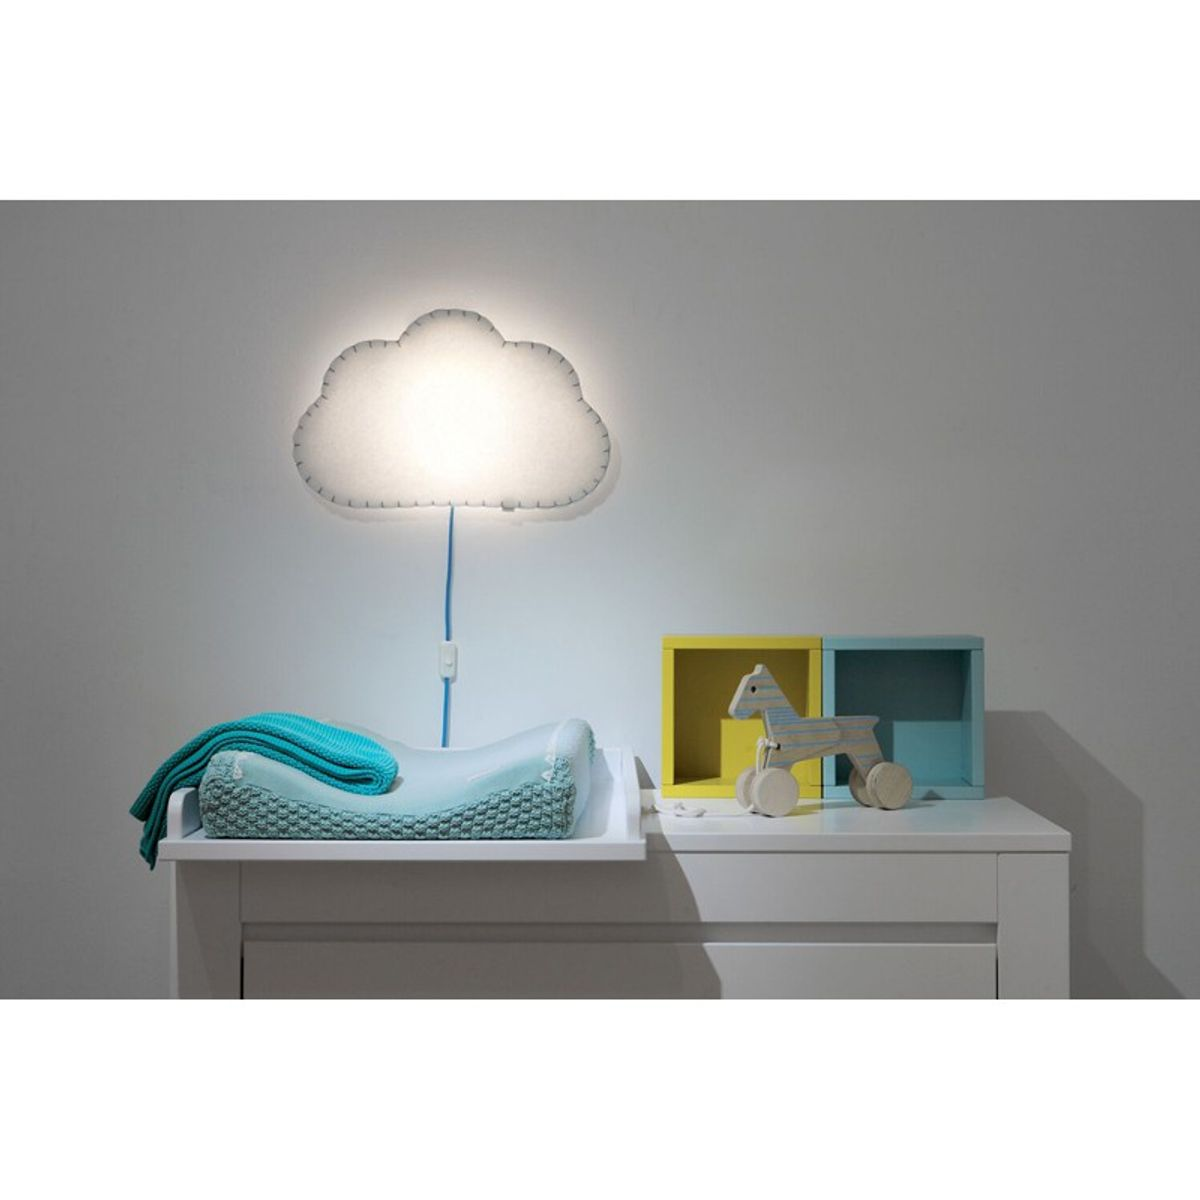 wandlampe wolke mit kabel und stecker von buokids. Black Bedroom Furniture Sets. Home Design Ideas